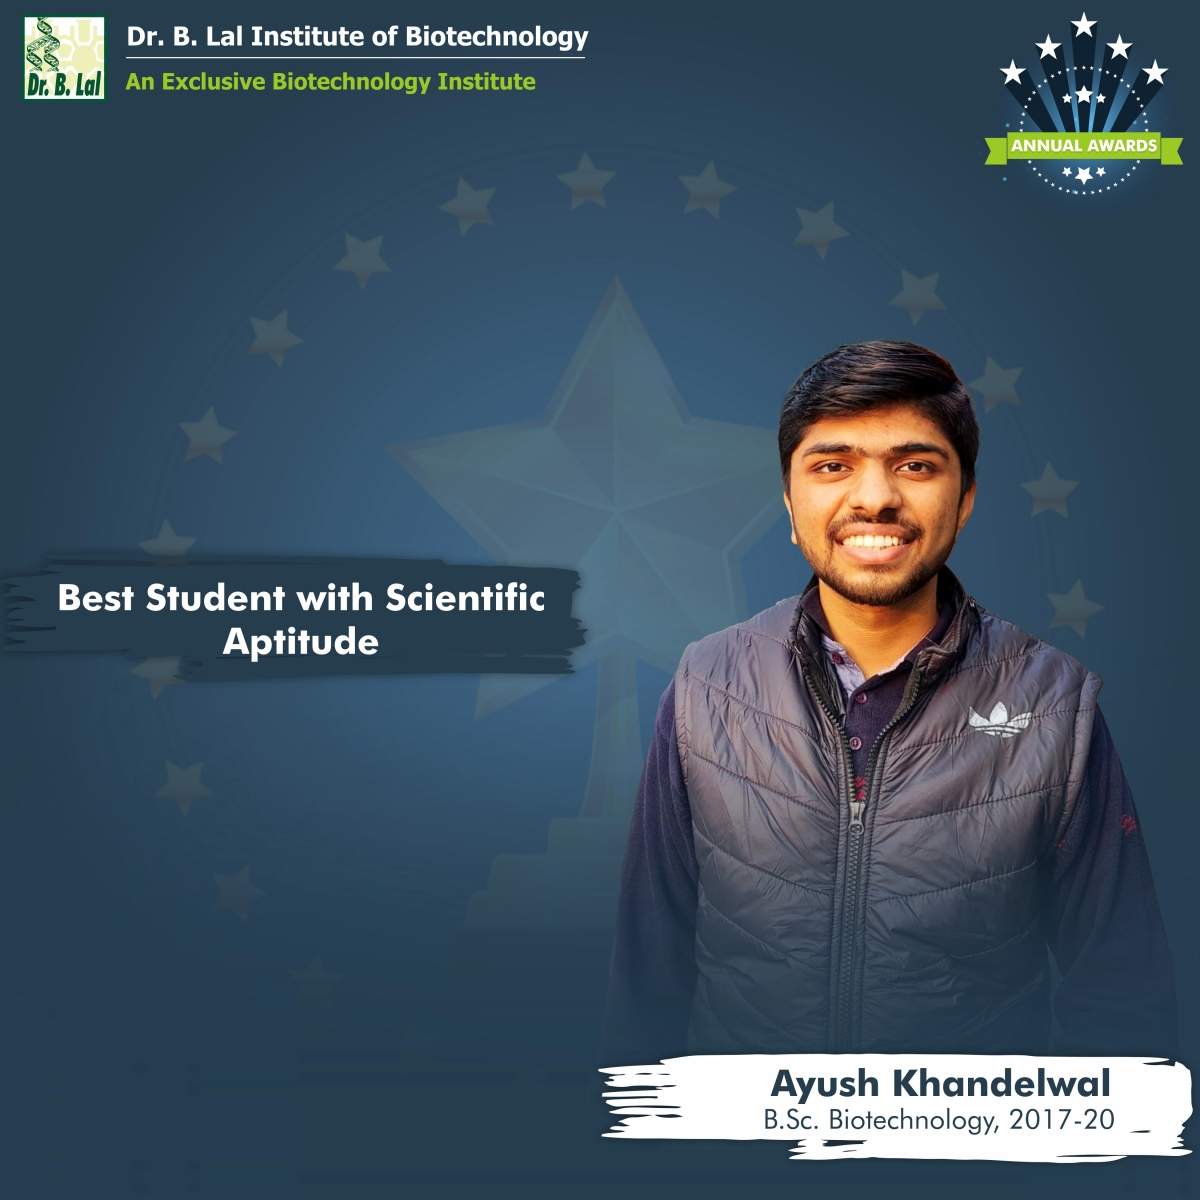 Best Student with Scientific Aptitude | Annual Awards